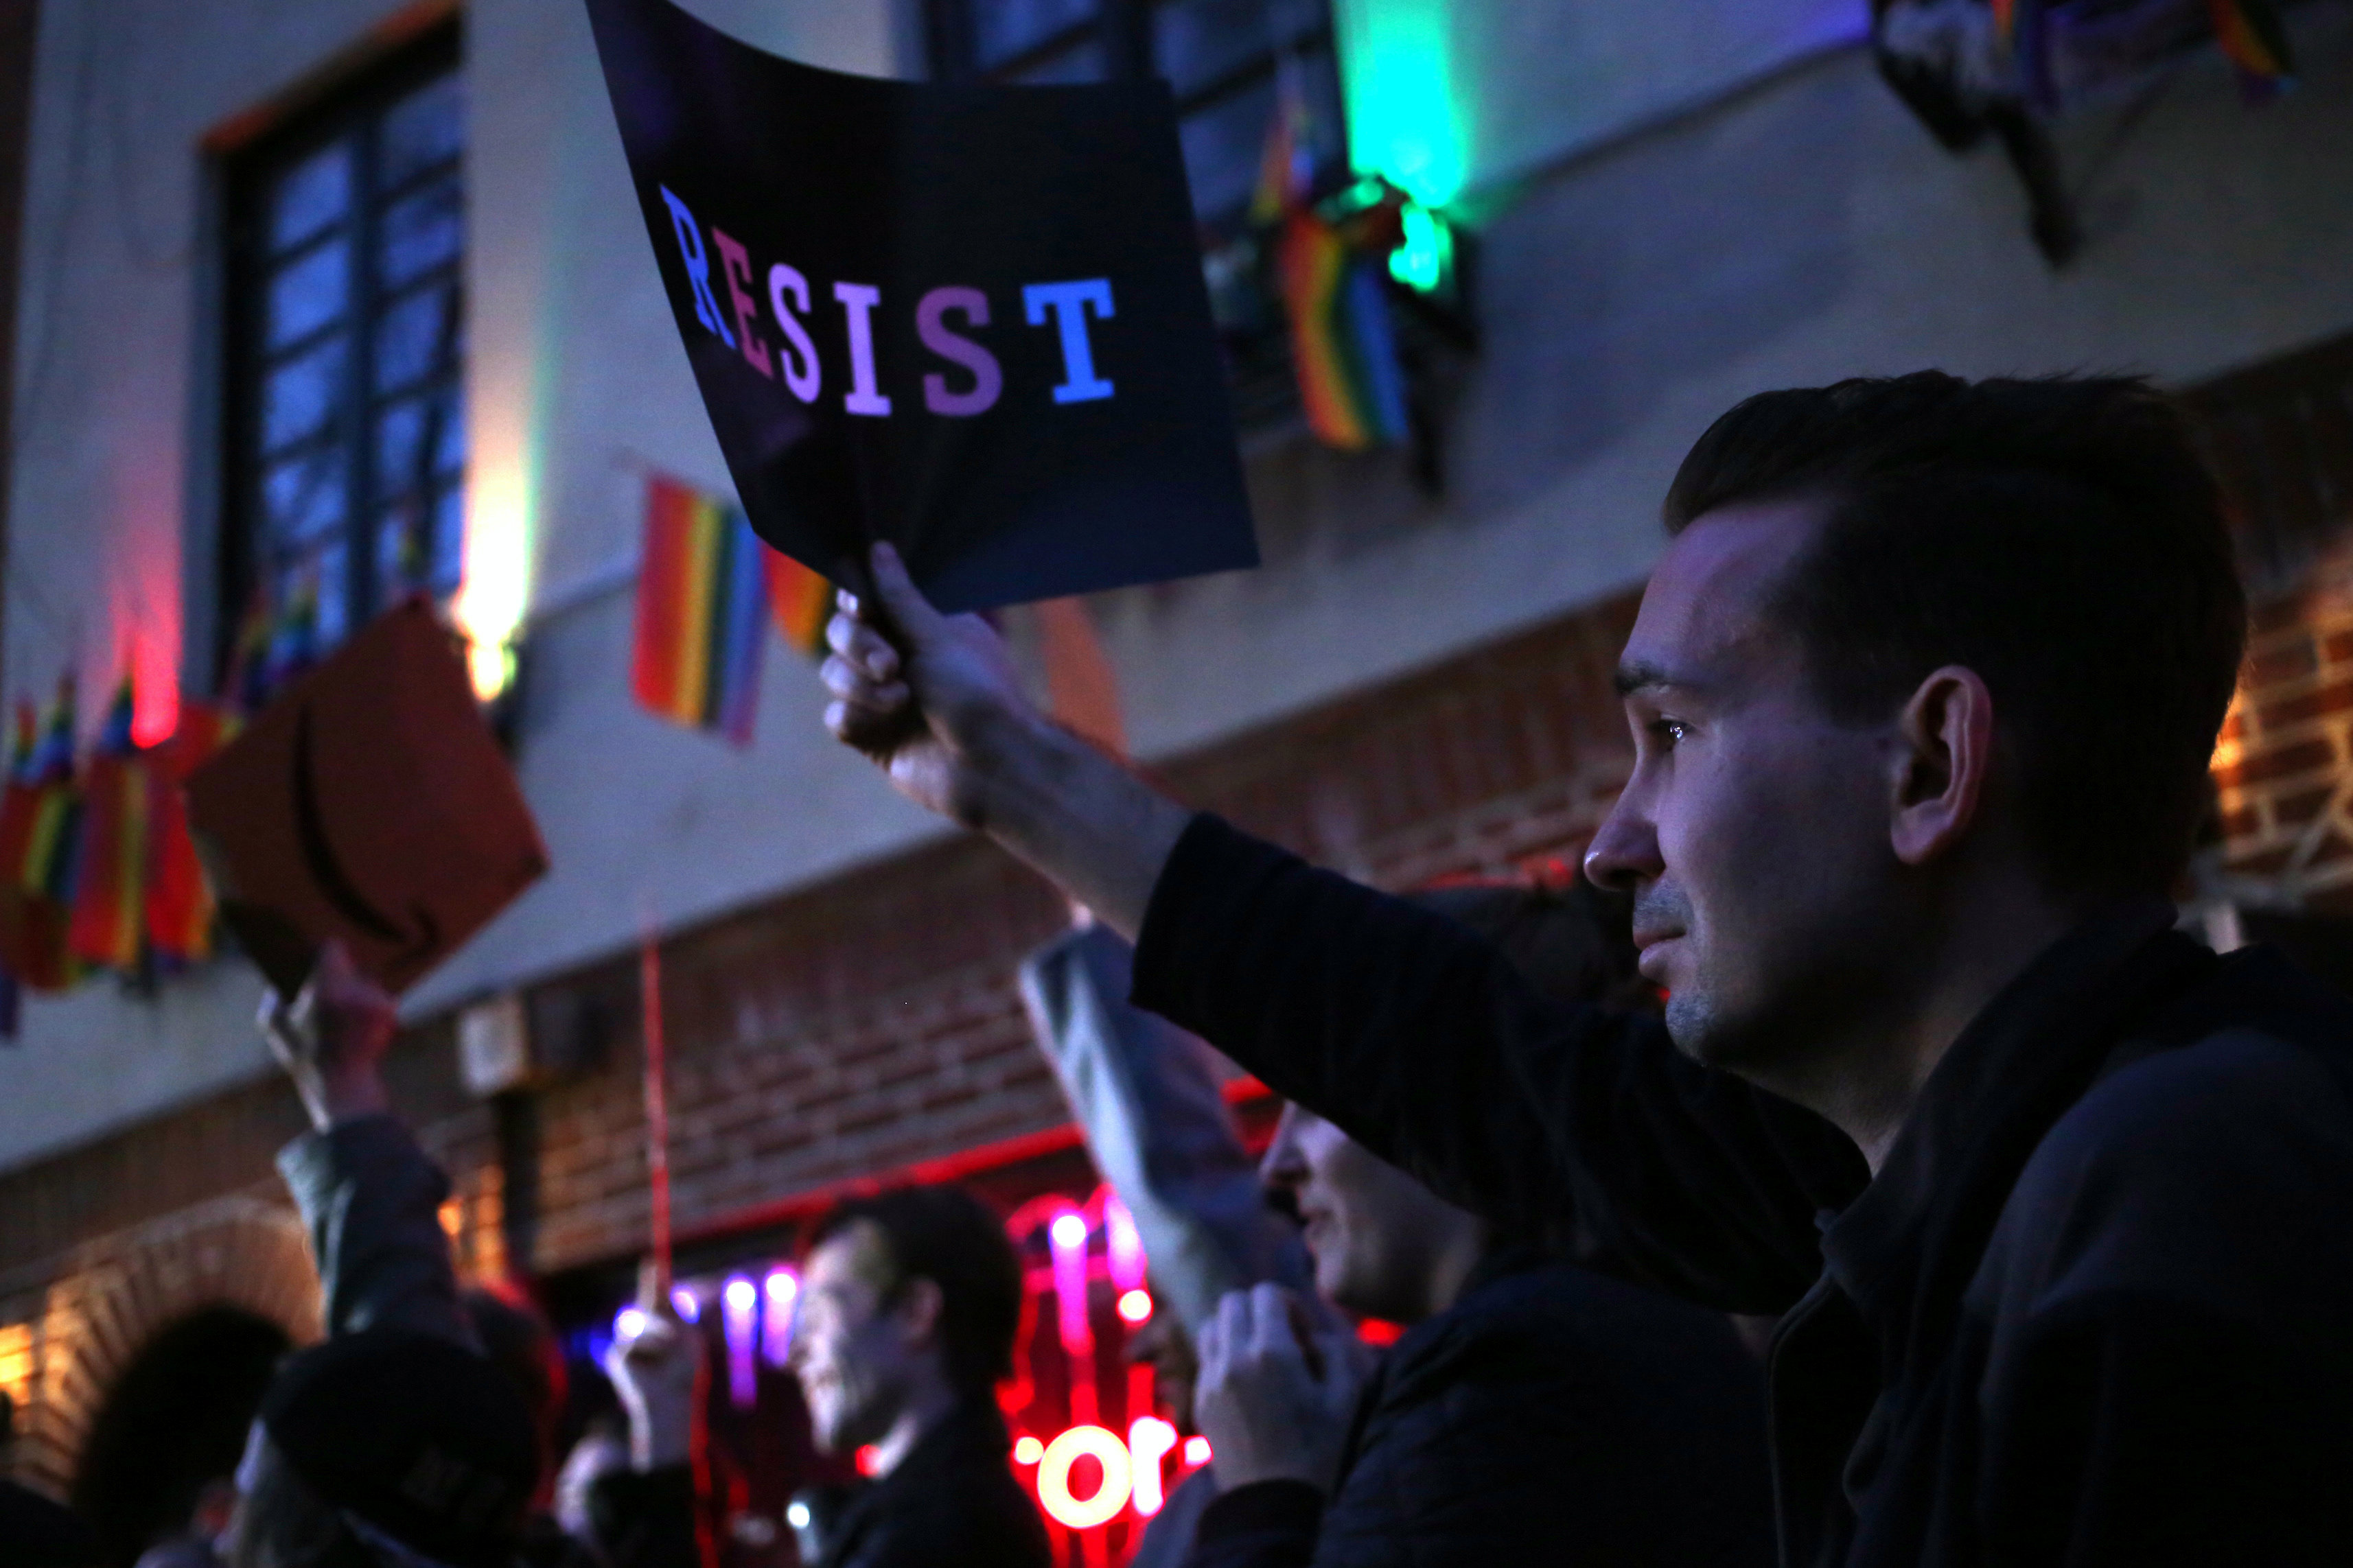 A man reacts outside of The Stonewall Inn during a protest against the Trump administration's move to rescind guidance allowing transgender students to use the bathrooms of their choice, in Manhattan, New York, U.S., February 23, 2017. REUTERS/Bria Webb